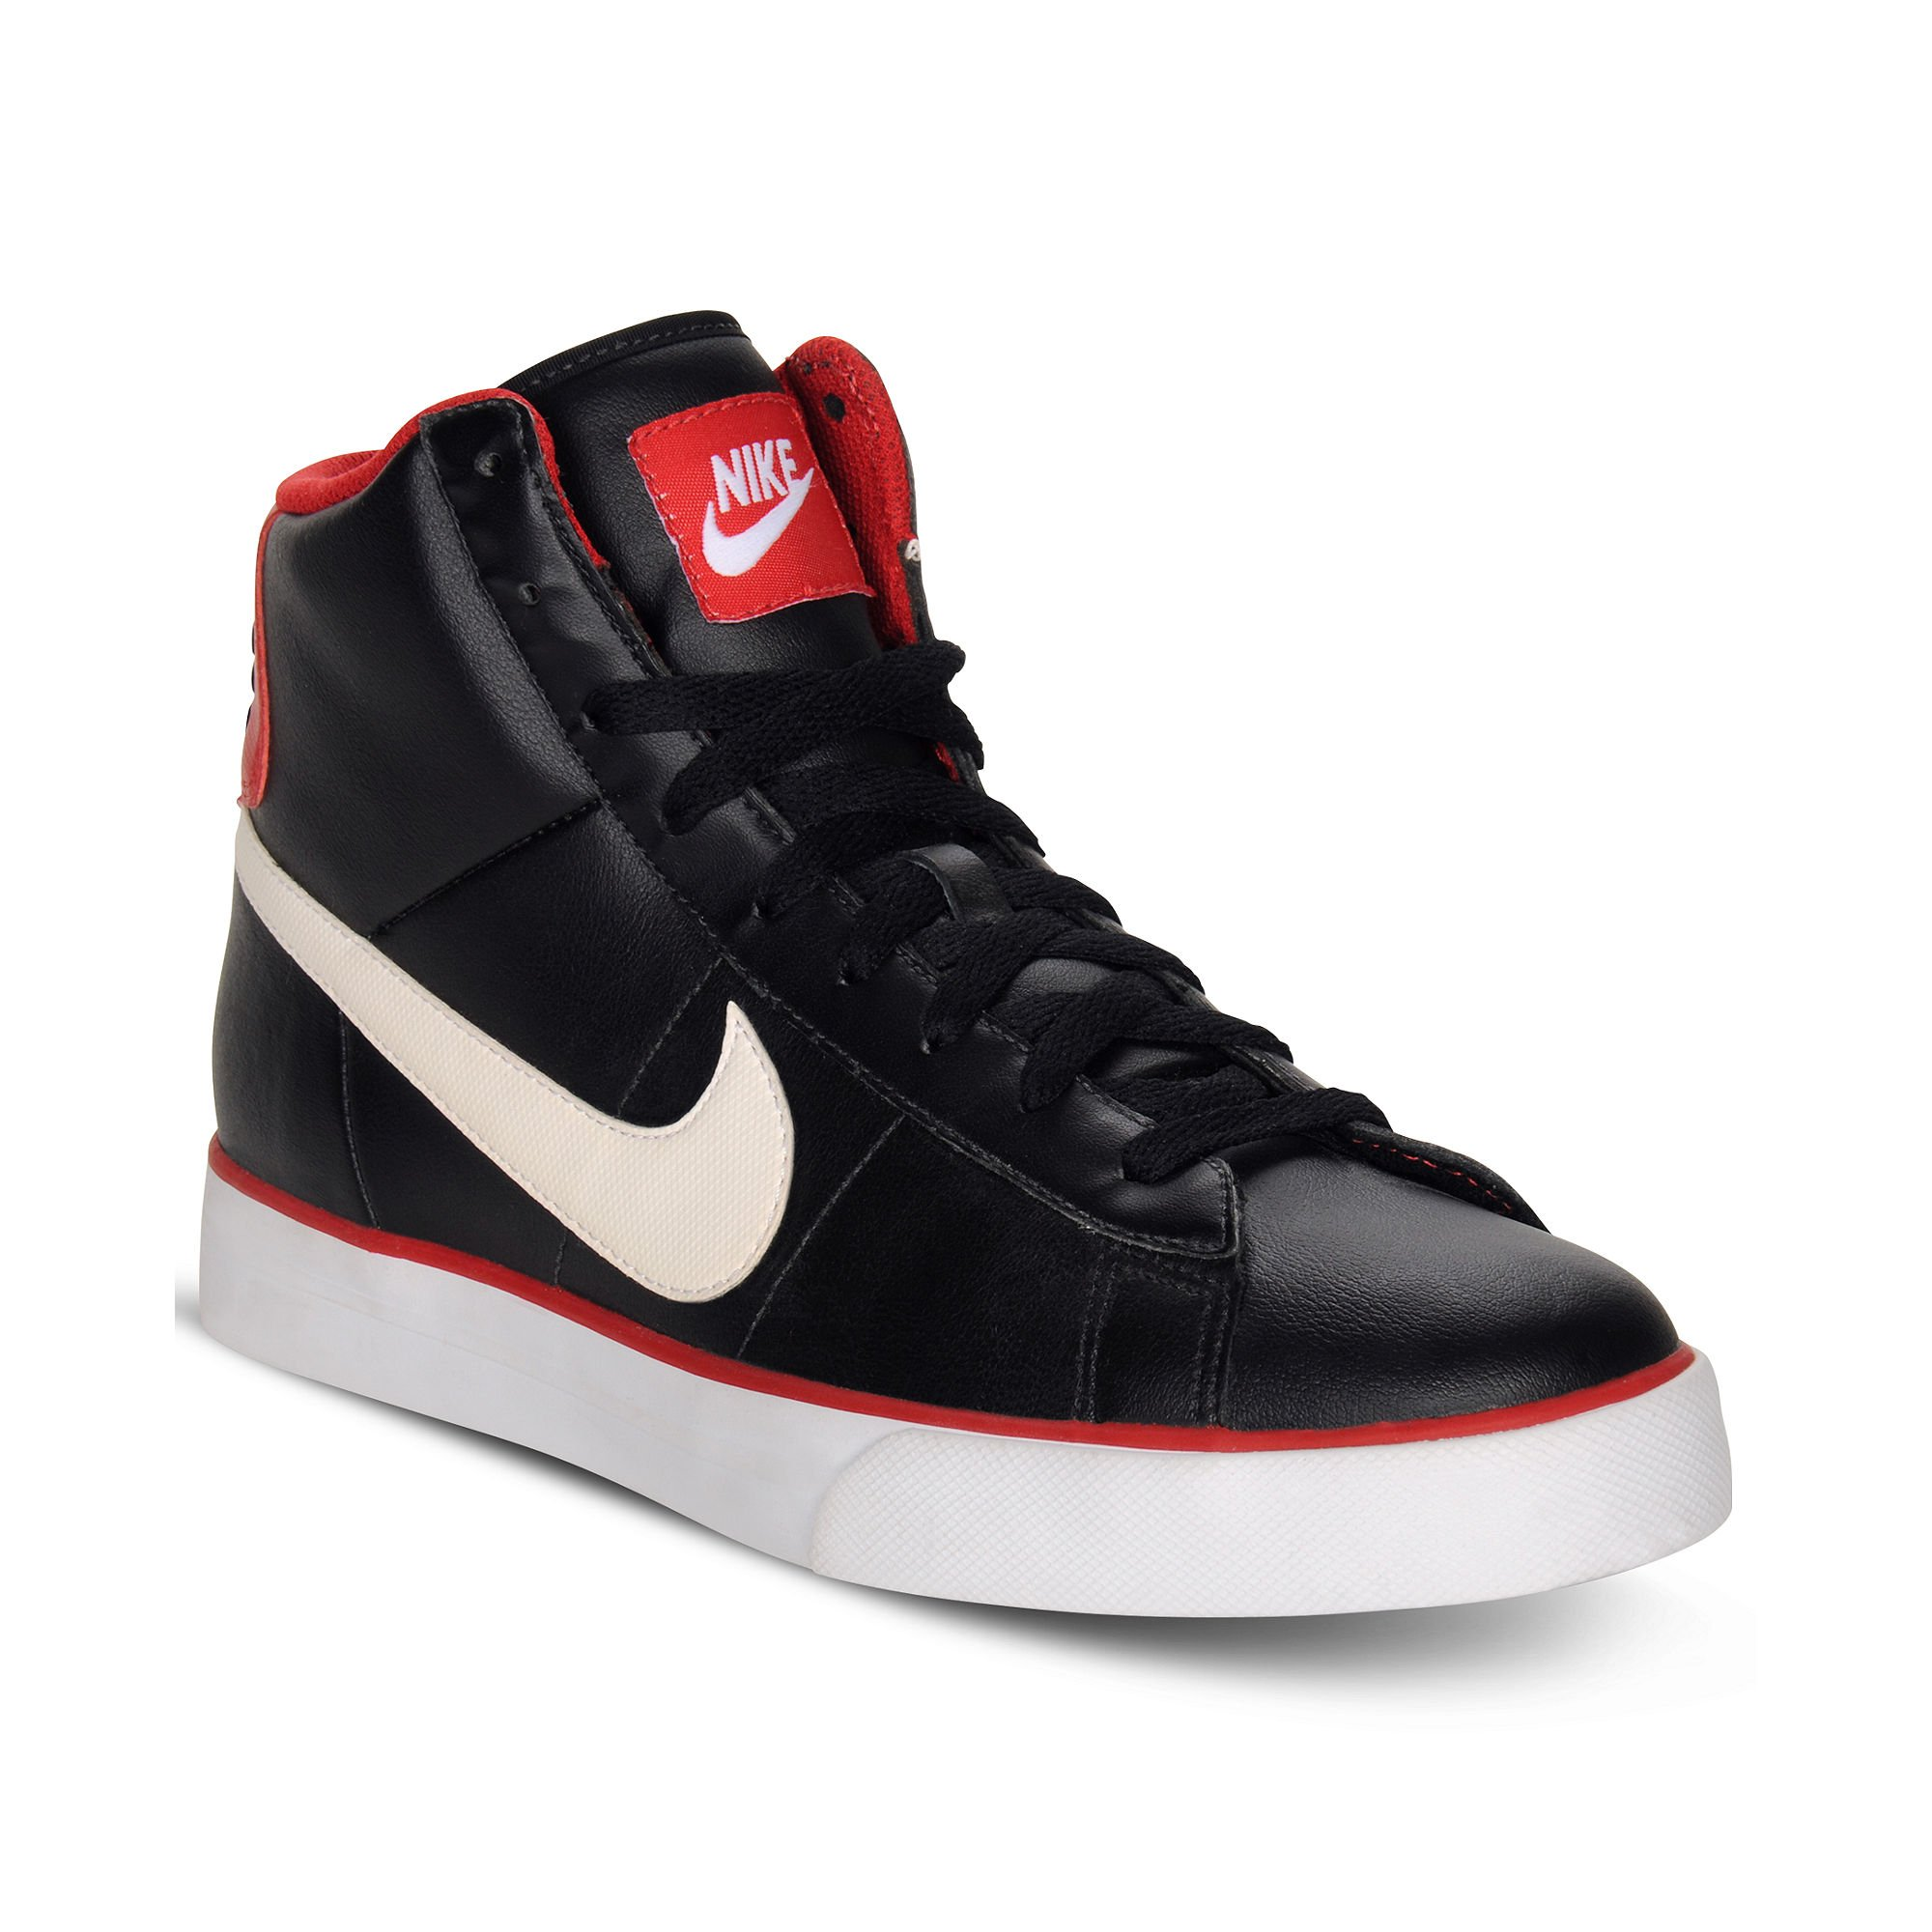 fd973d43b Lyst - Nike Sweet Classic Leather High Top Sneakers in Black for Men